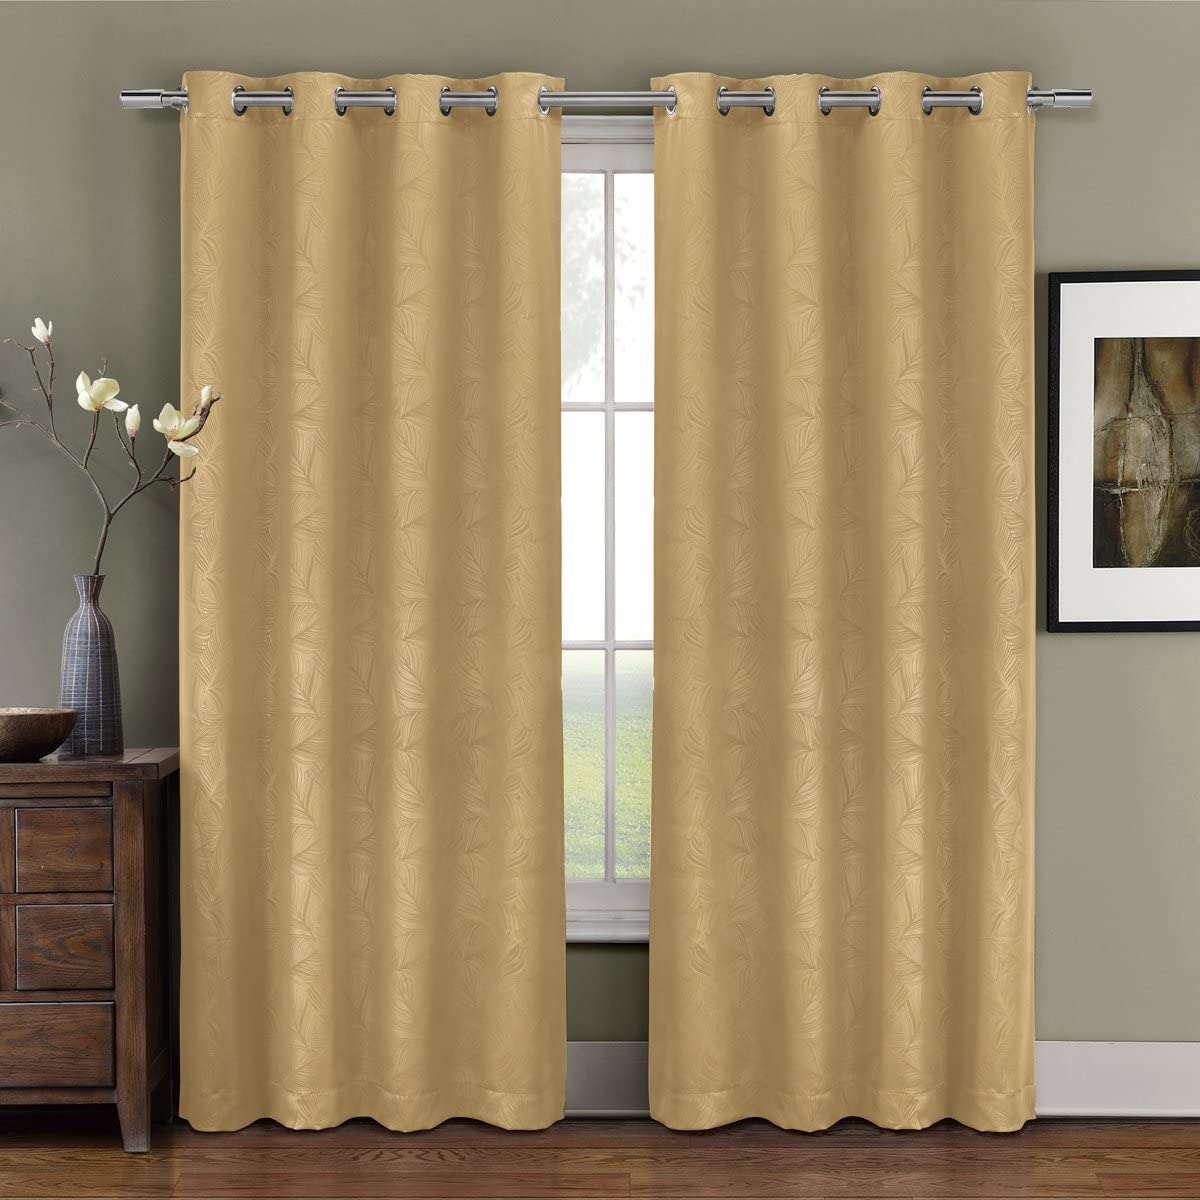 Exquisite Draperies Pair of Two Top Grommet Blackout Weave Embossed Curtain Panels, Triple-Pass Foam Back Layer, Elegant and Contemporary Prairie Blackout Panels, Gold, 108 Panels